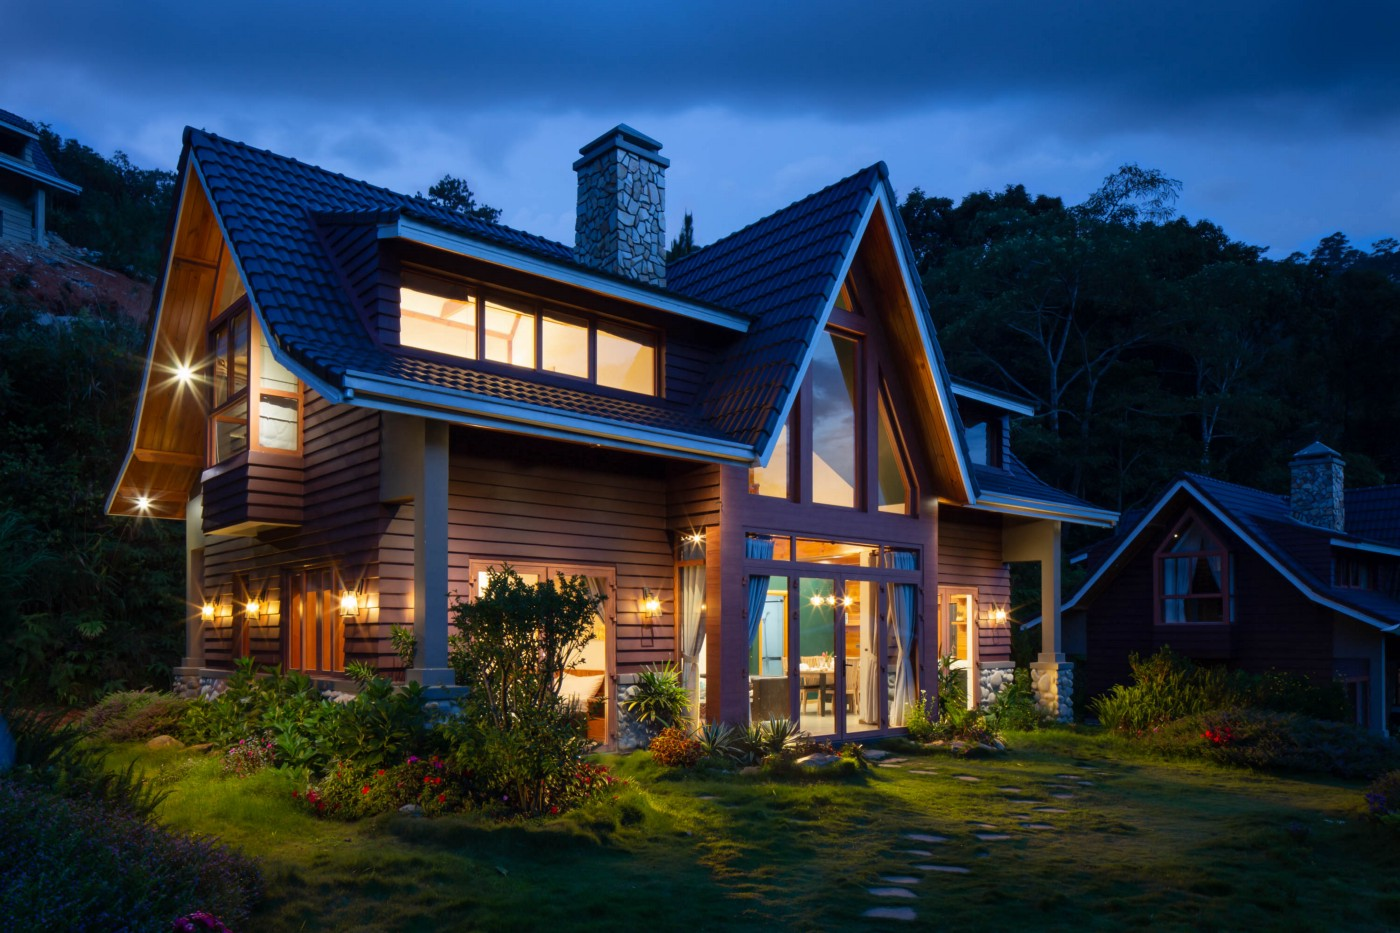 Cabin-style home exterior after sunset with lights on